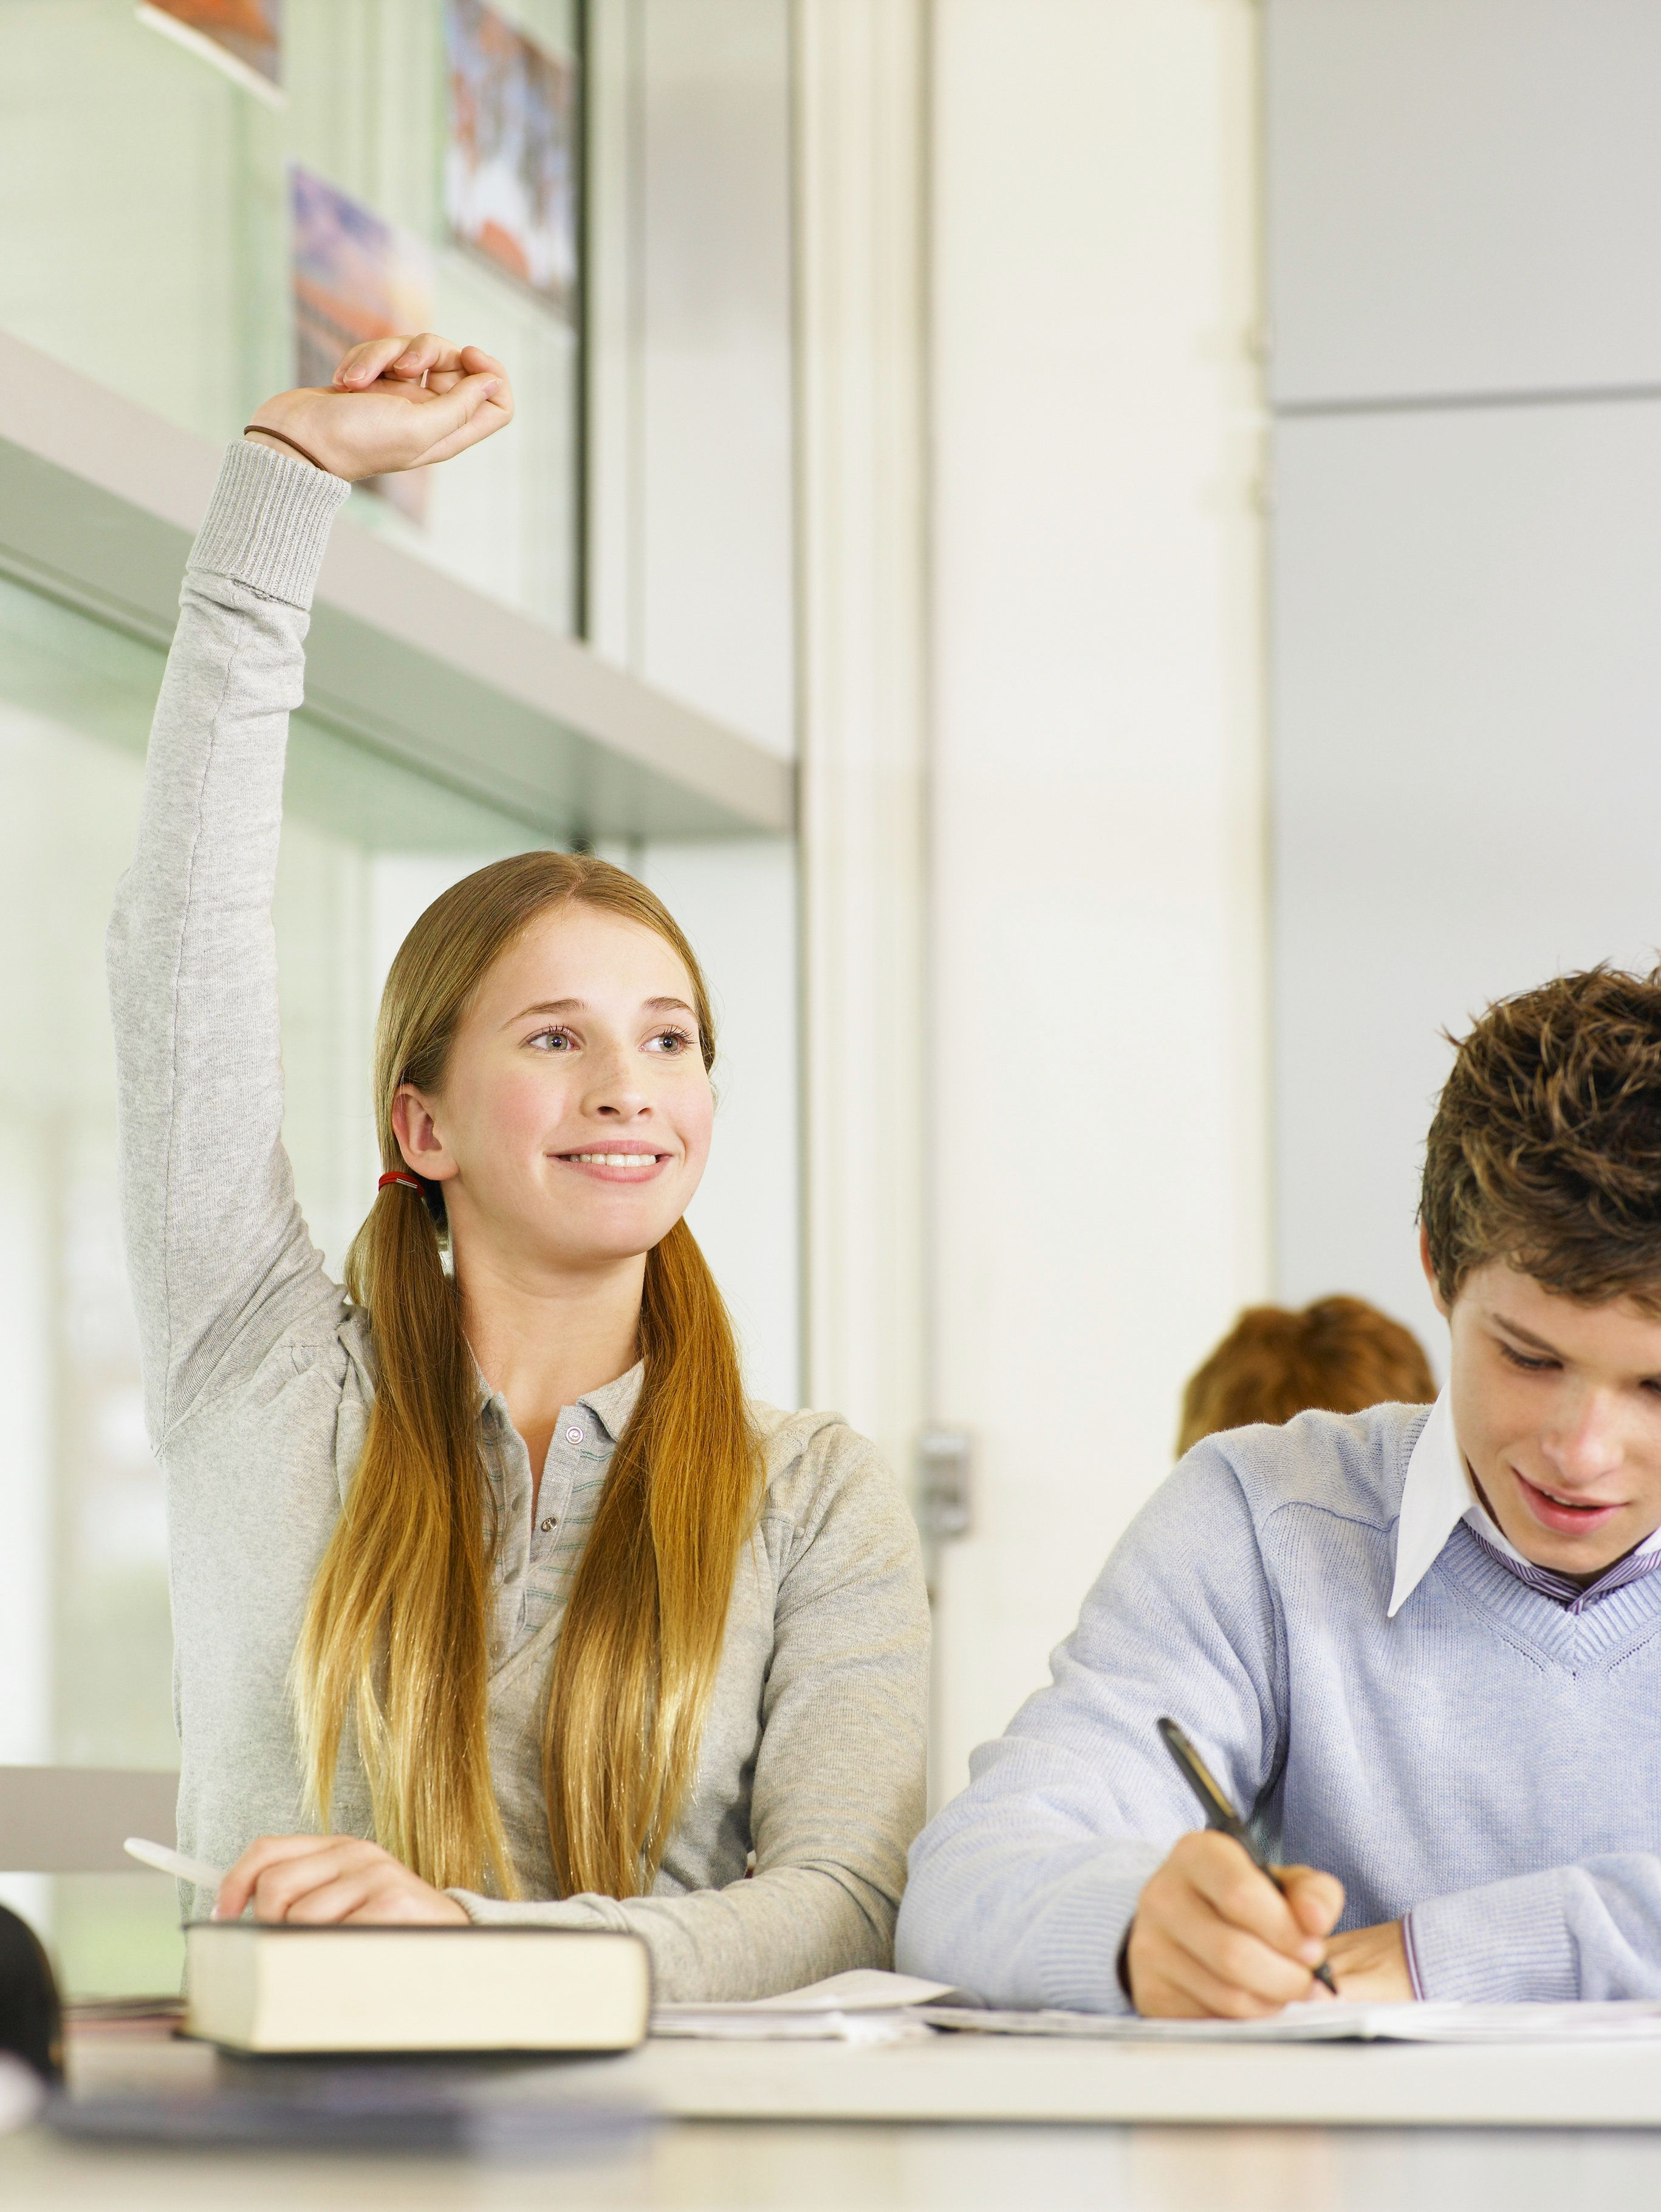 The University Gender Gap Begins Earlier Than You Might